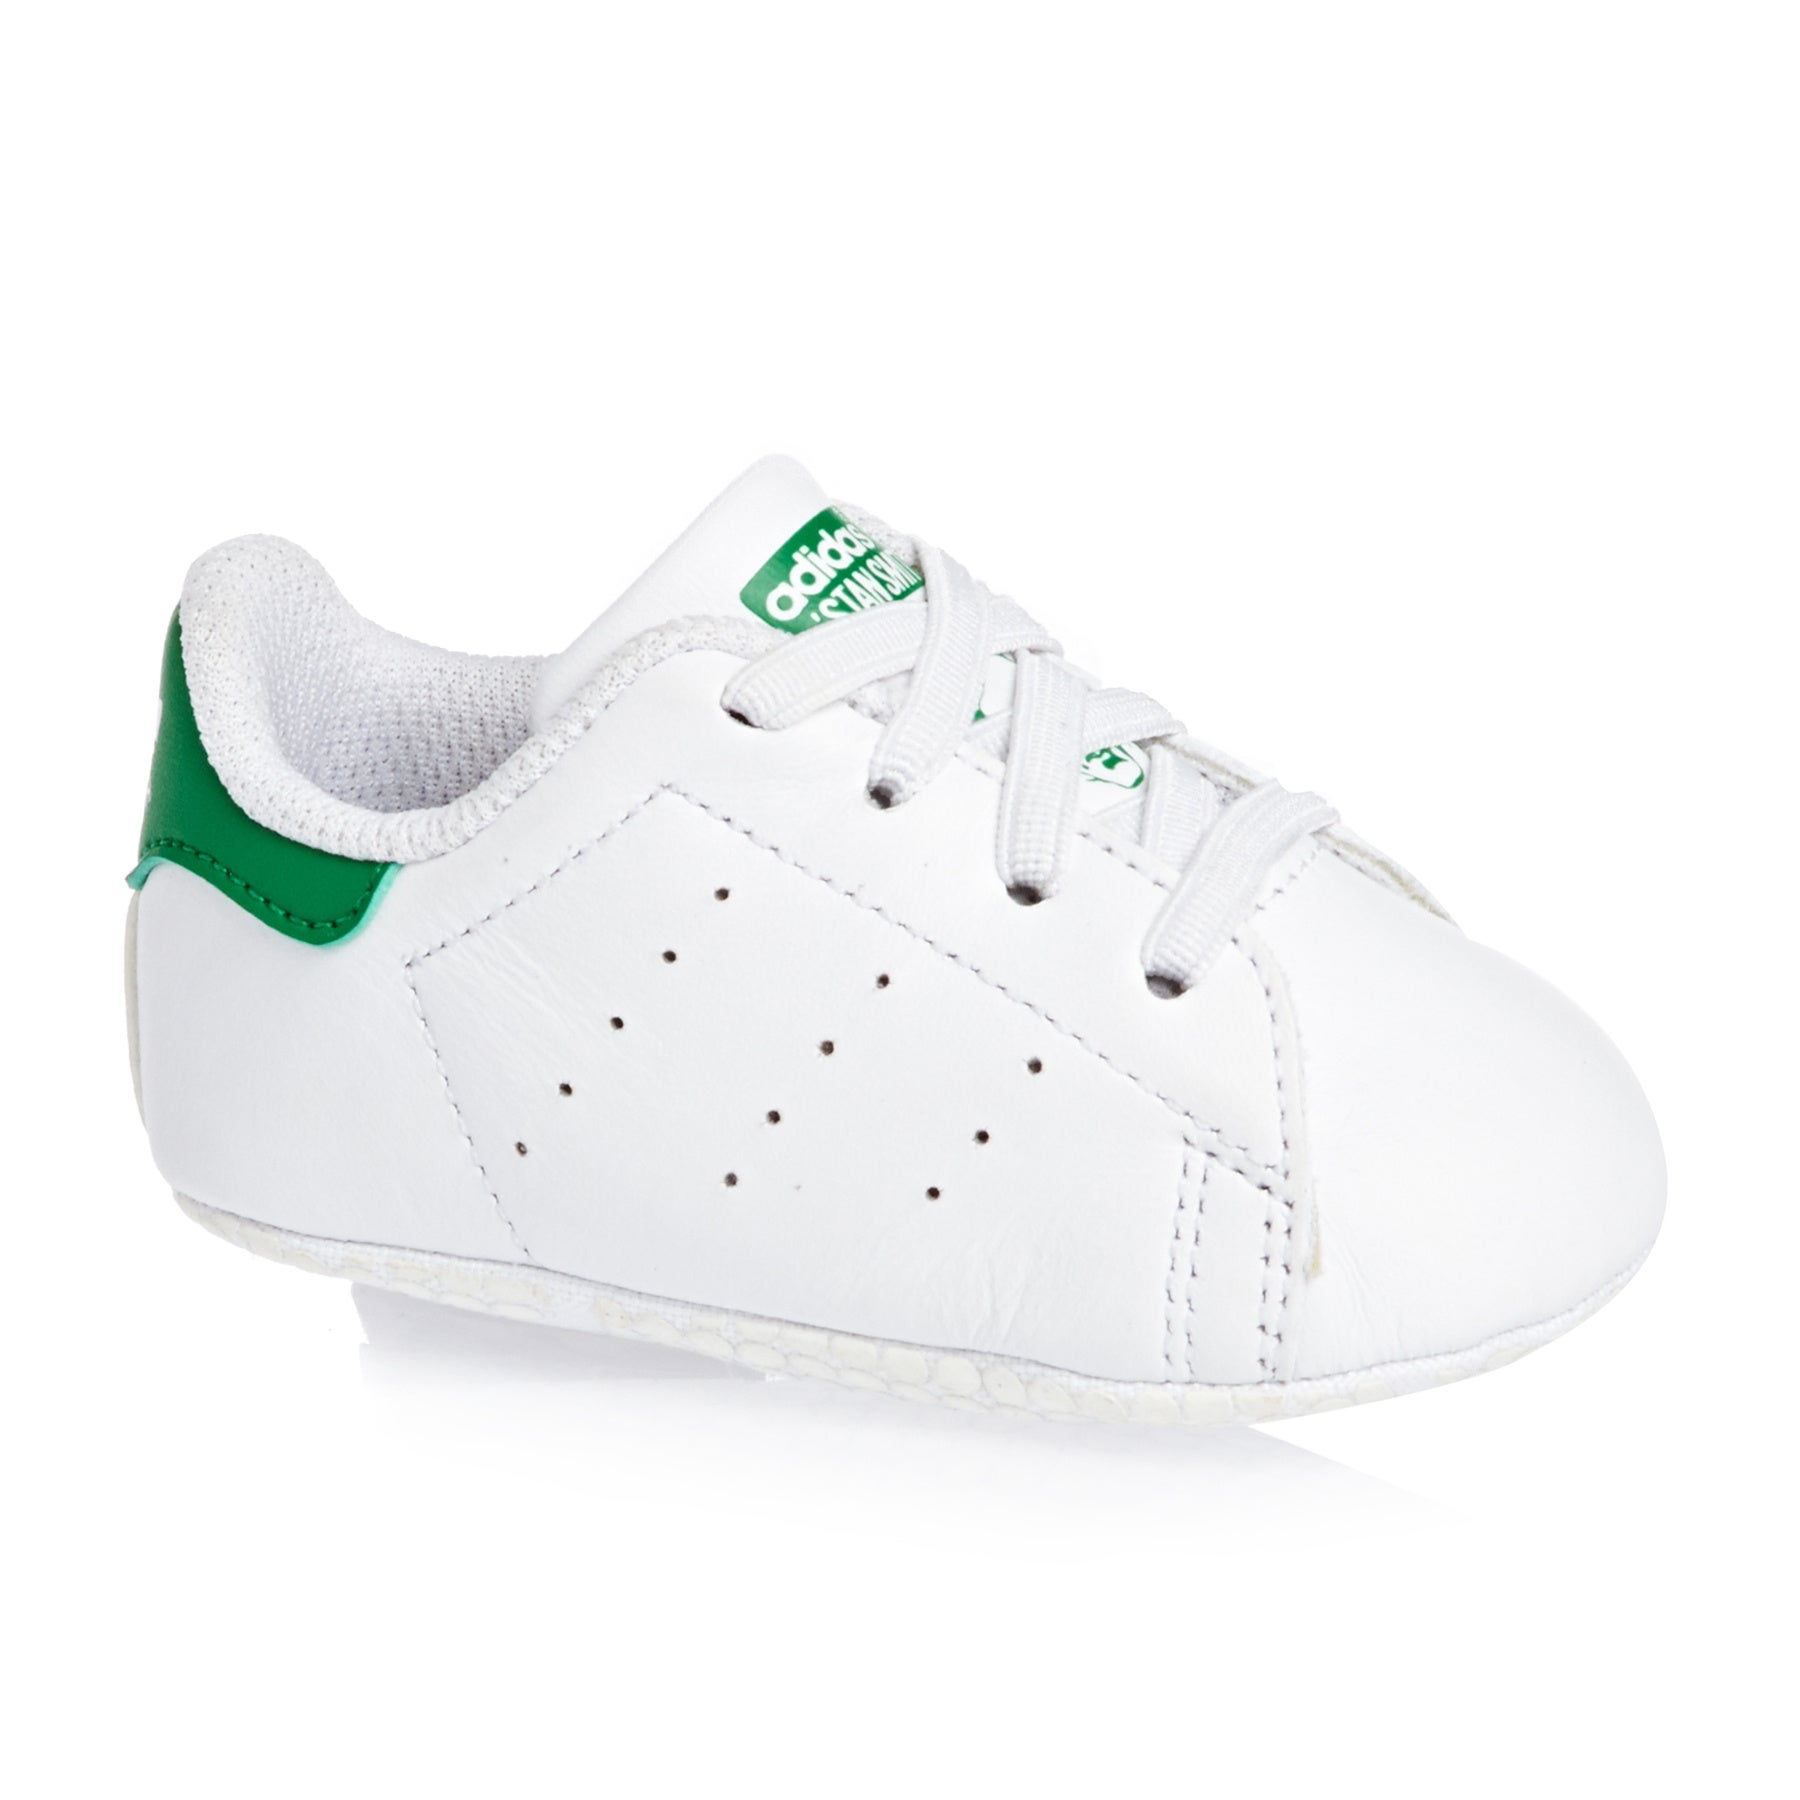 Adidas Originals Stan Smith Crib Shoes - White Green